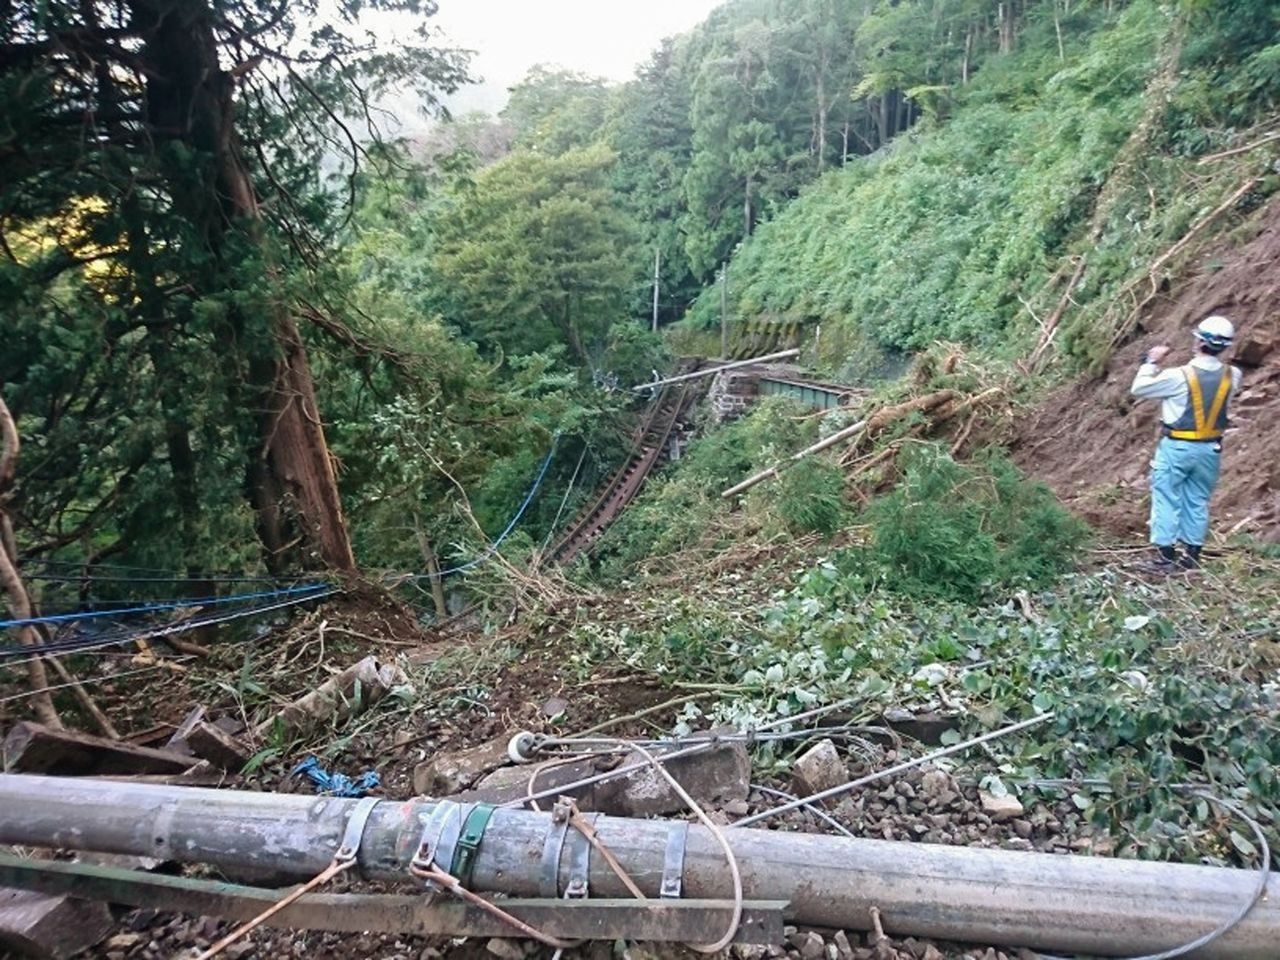 Landslides swept away much of the track between Miyanoshita and Kowakidani Stations, as shown in this photo taken on October 13, 2019. (Photo courtesy of Hakone Tozan Railway; © Jiji.)